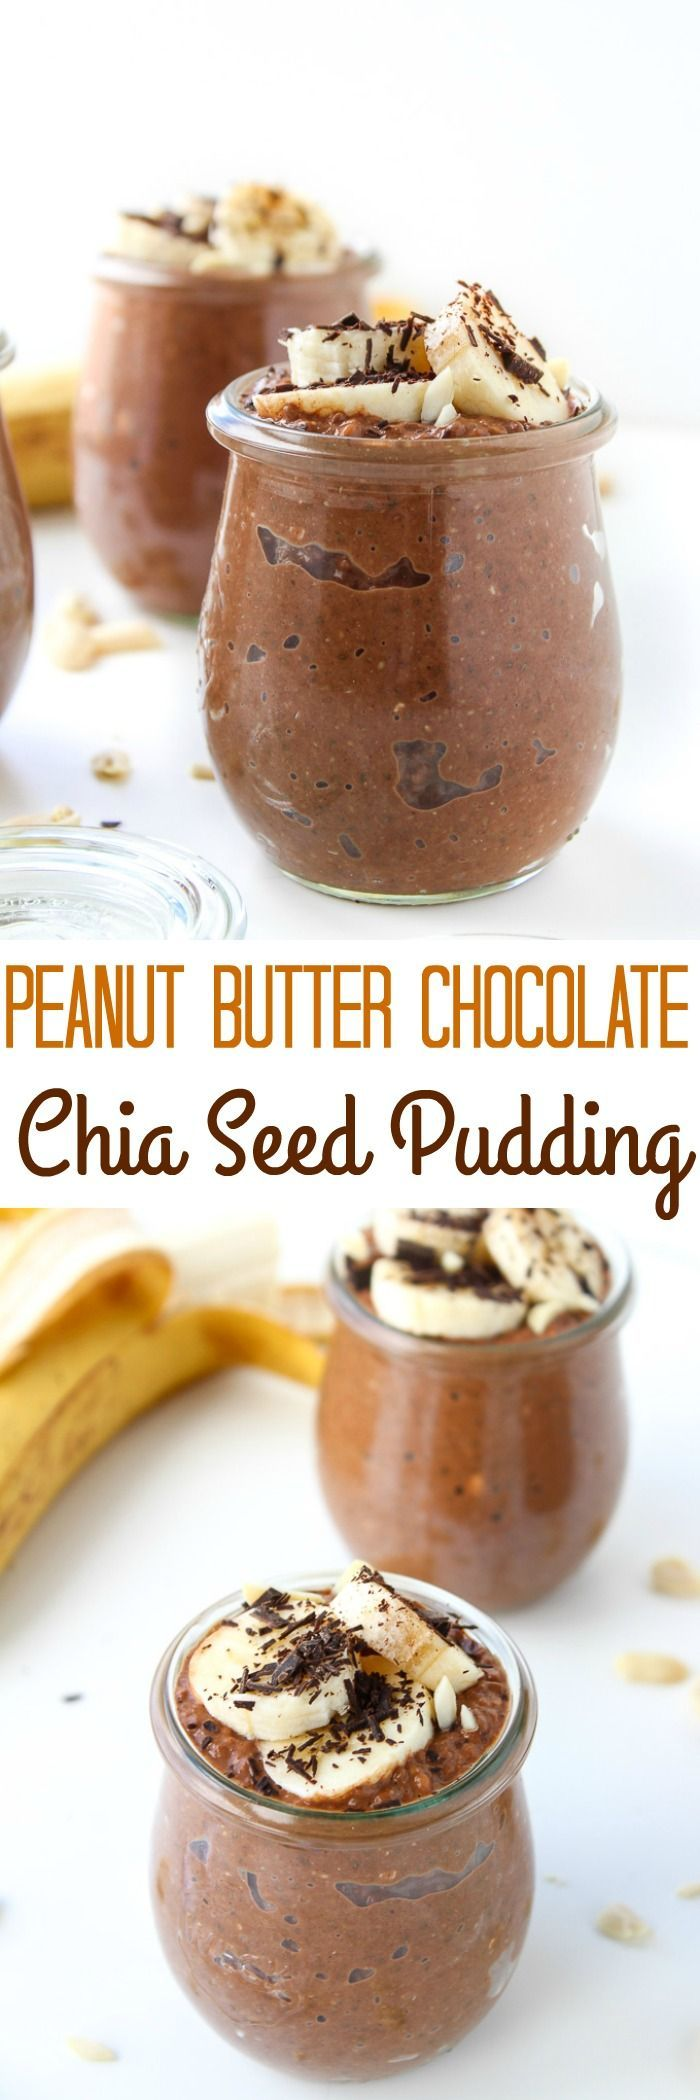 Peanut Butter Chocolate Chia Seed Pudding Gluten free & Vegan